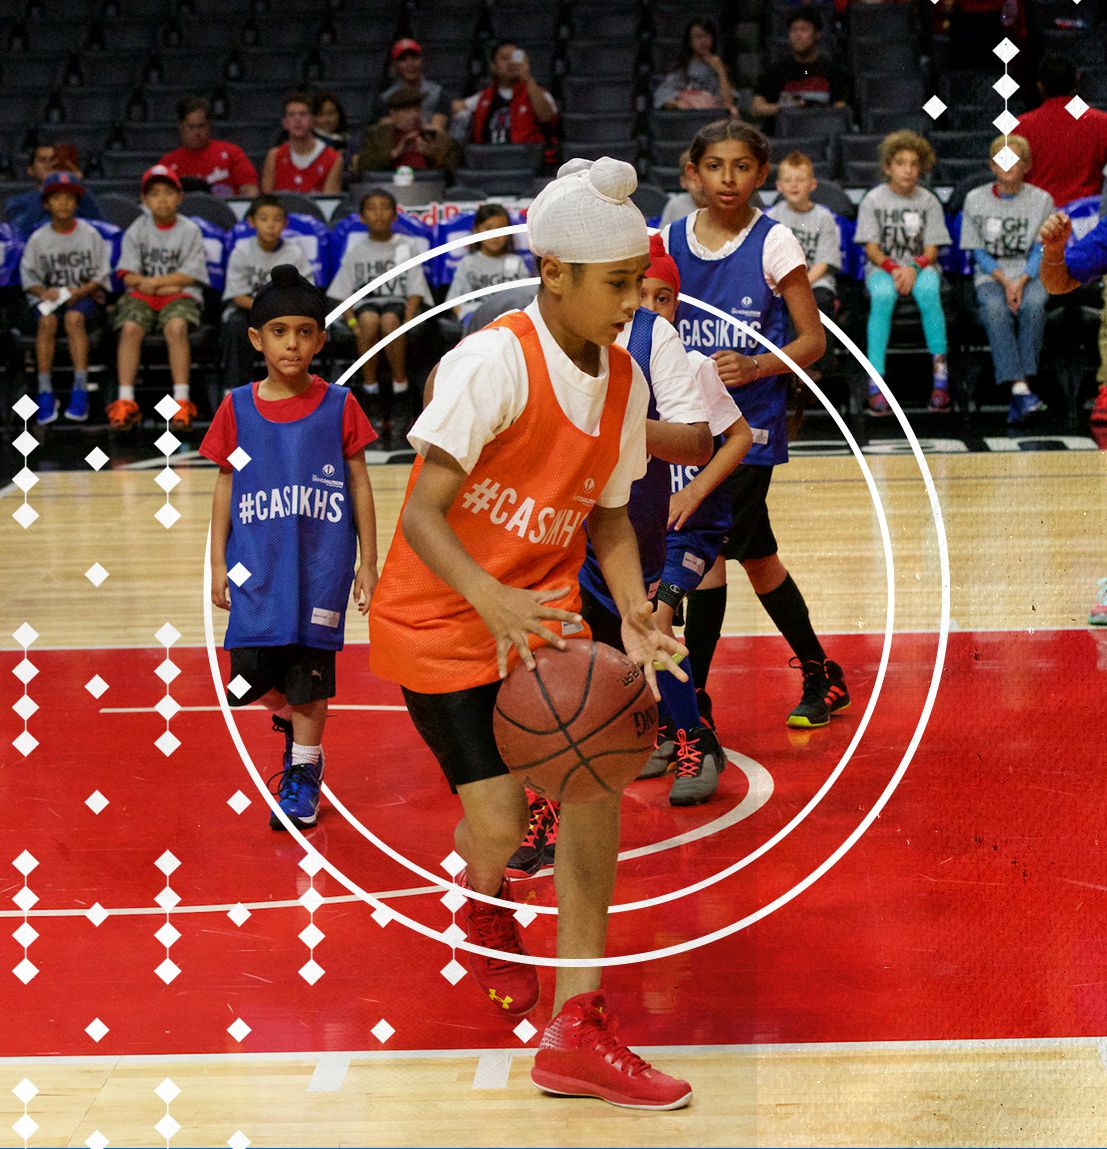 A Sikh boy, his head wrapped in a turban, dribbling a basketball during a scrimmage on the Clippers' home floor.